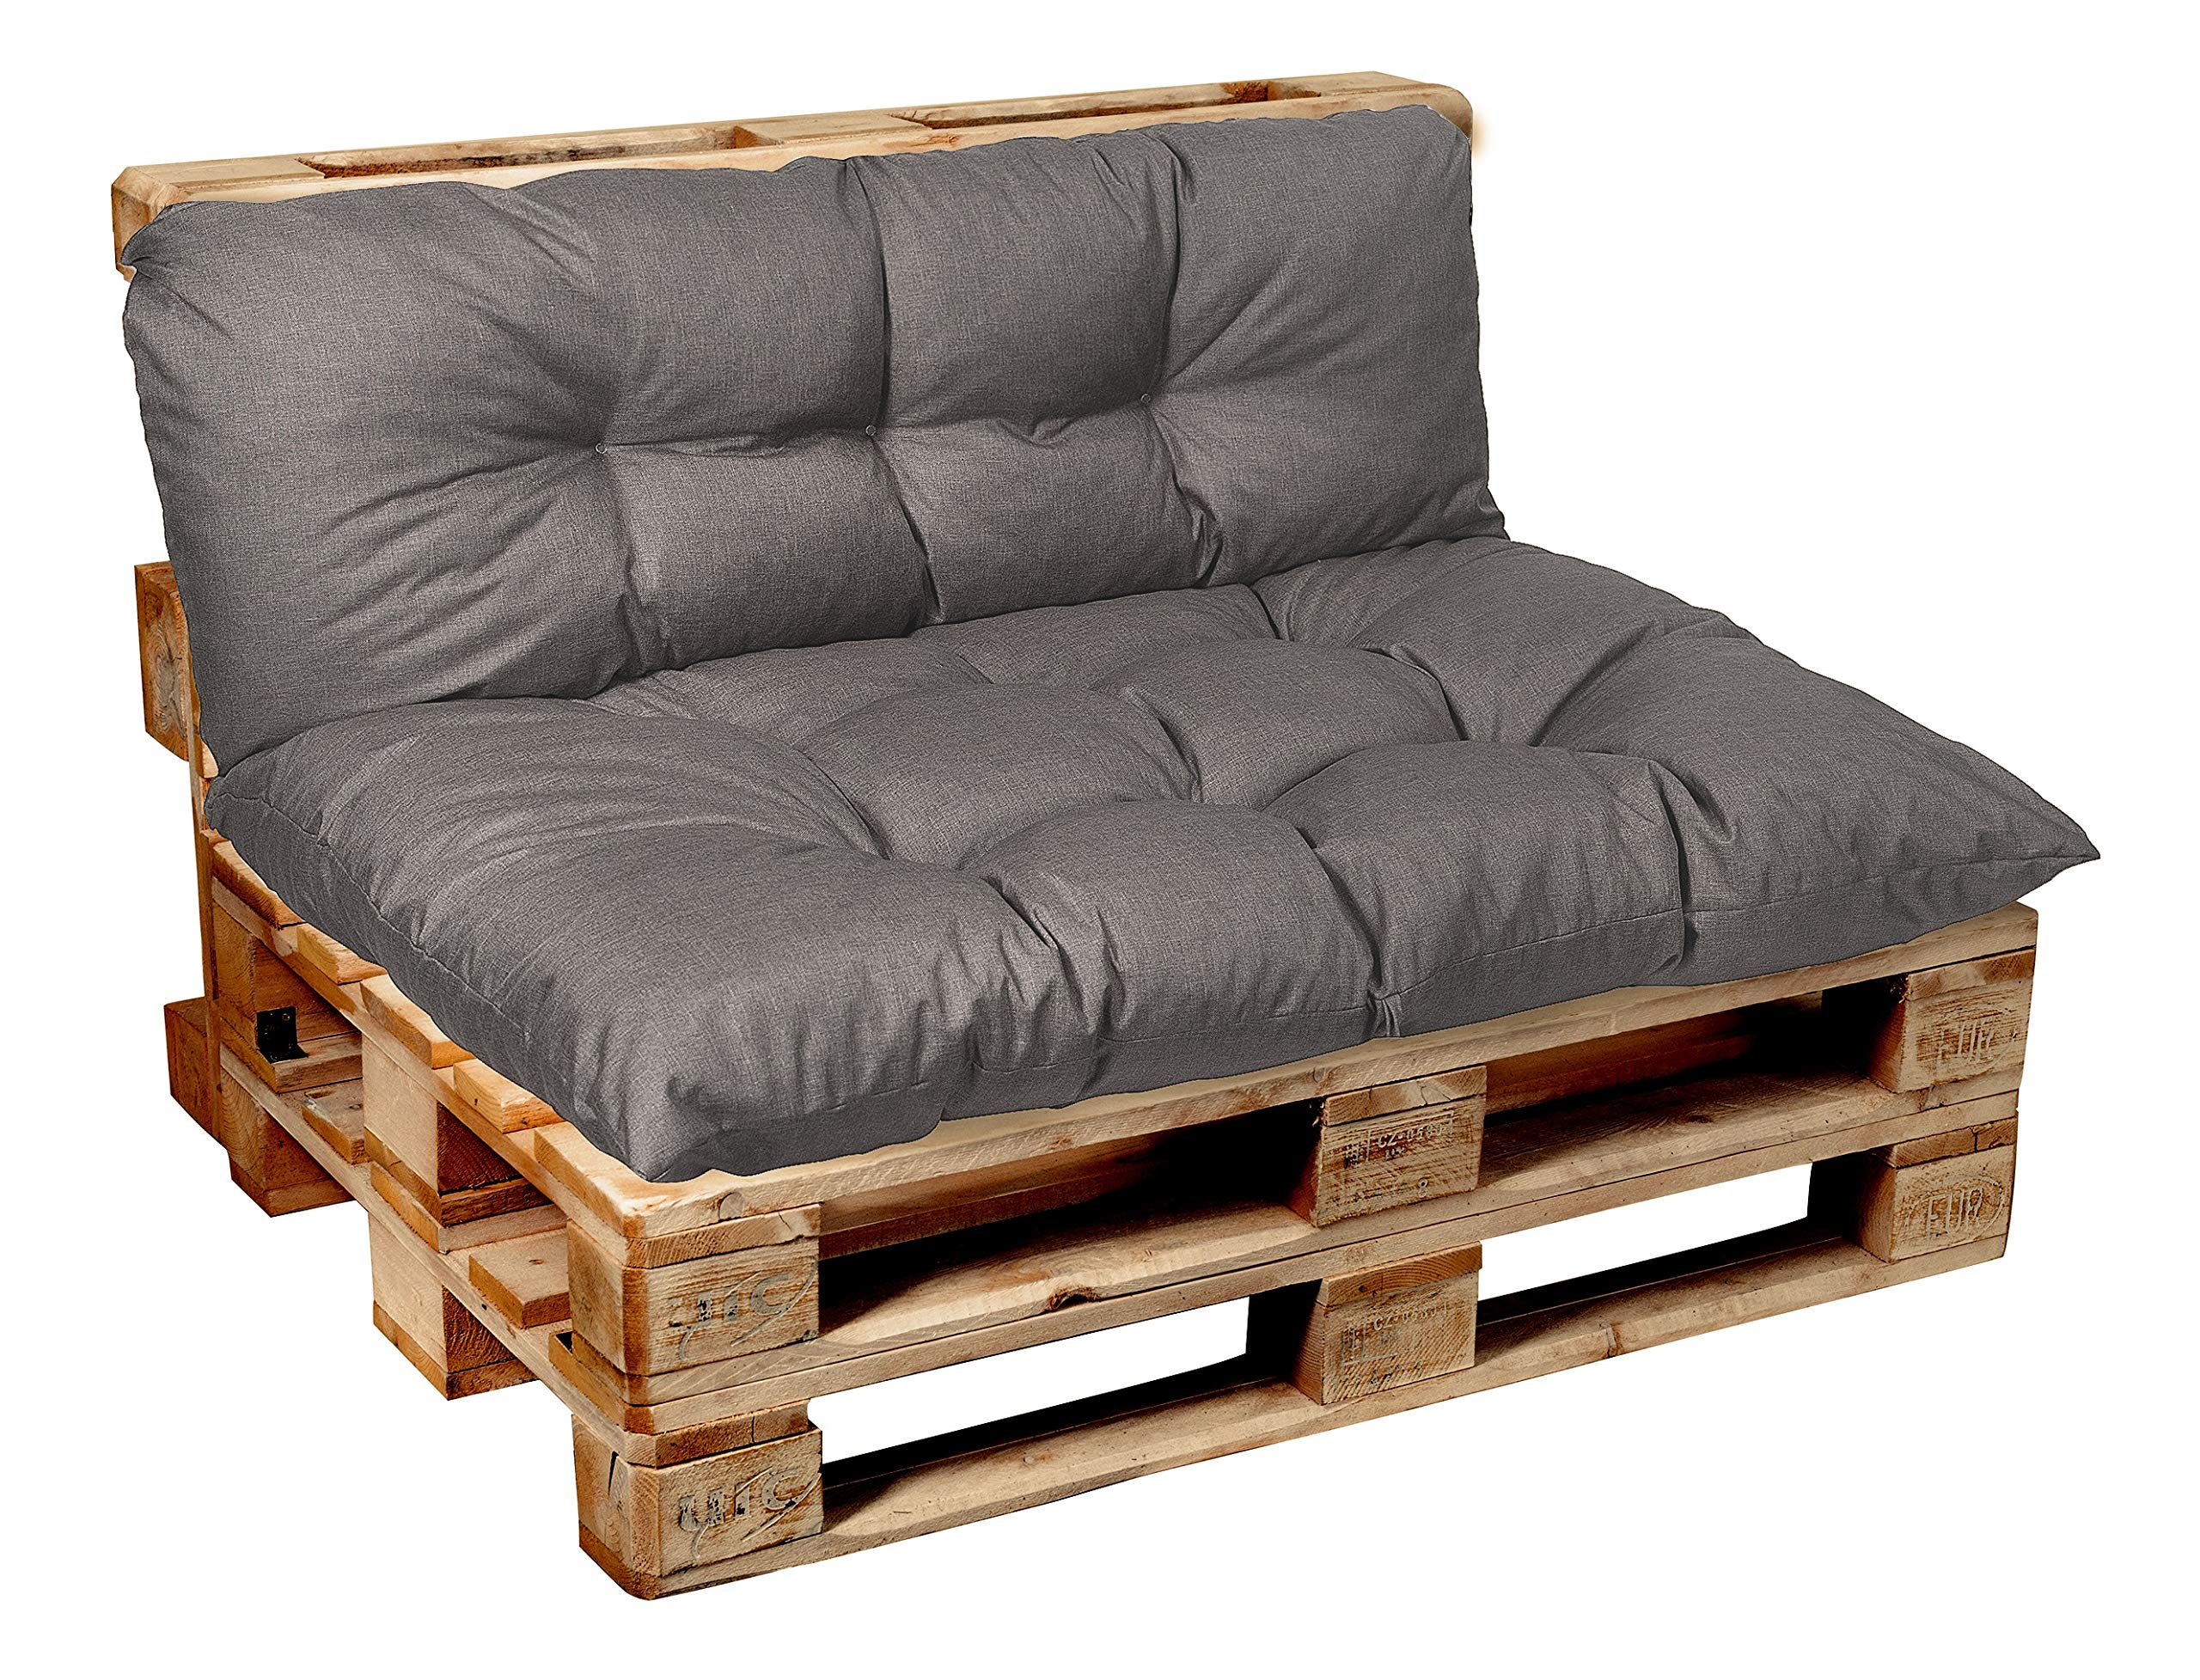 Garden Euro Pallet Cushions, Tufted, Seating, Backrest, Corner, Set Cushions Outdoor Indoor 120x80, 120x60, 120x50, 120x40